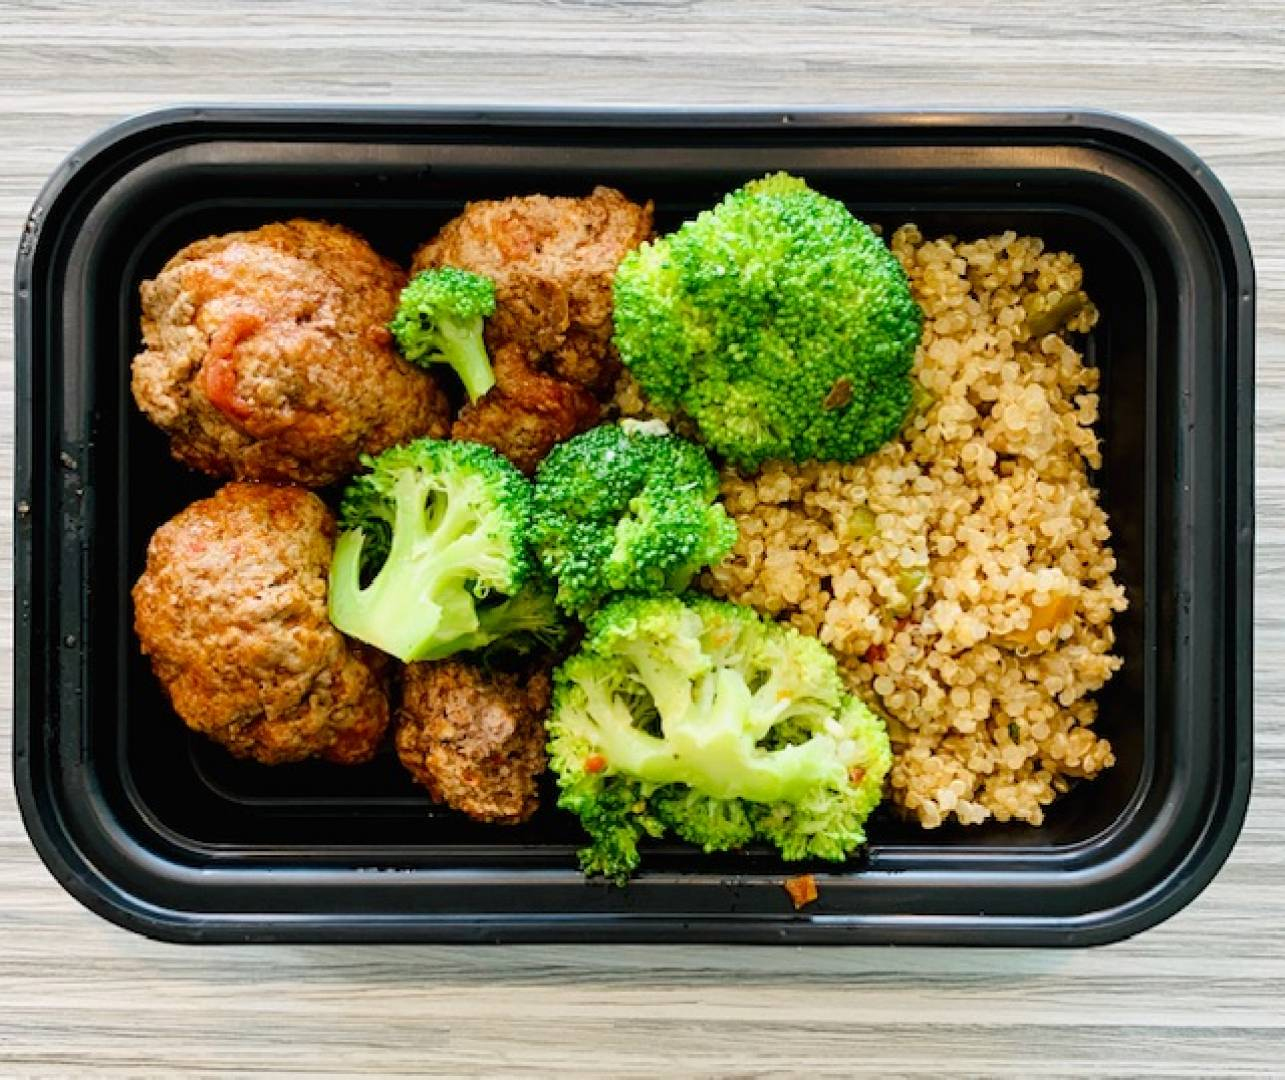 Turkey Meatballs, Quinoa and Broccoli